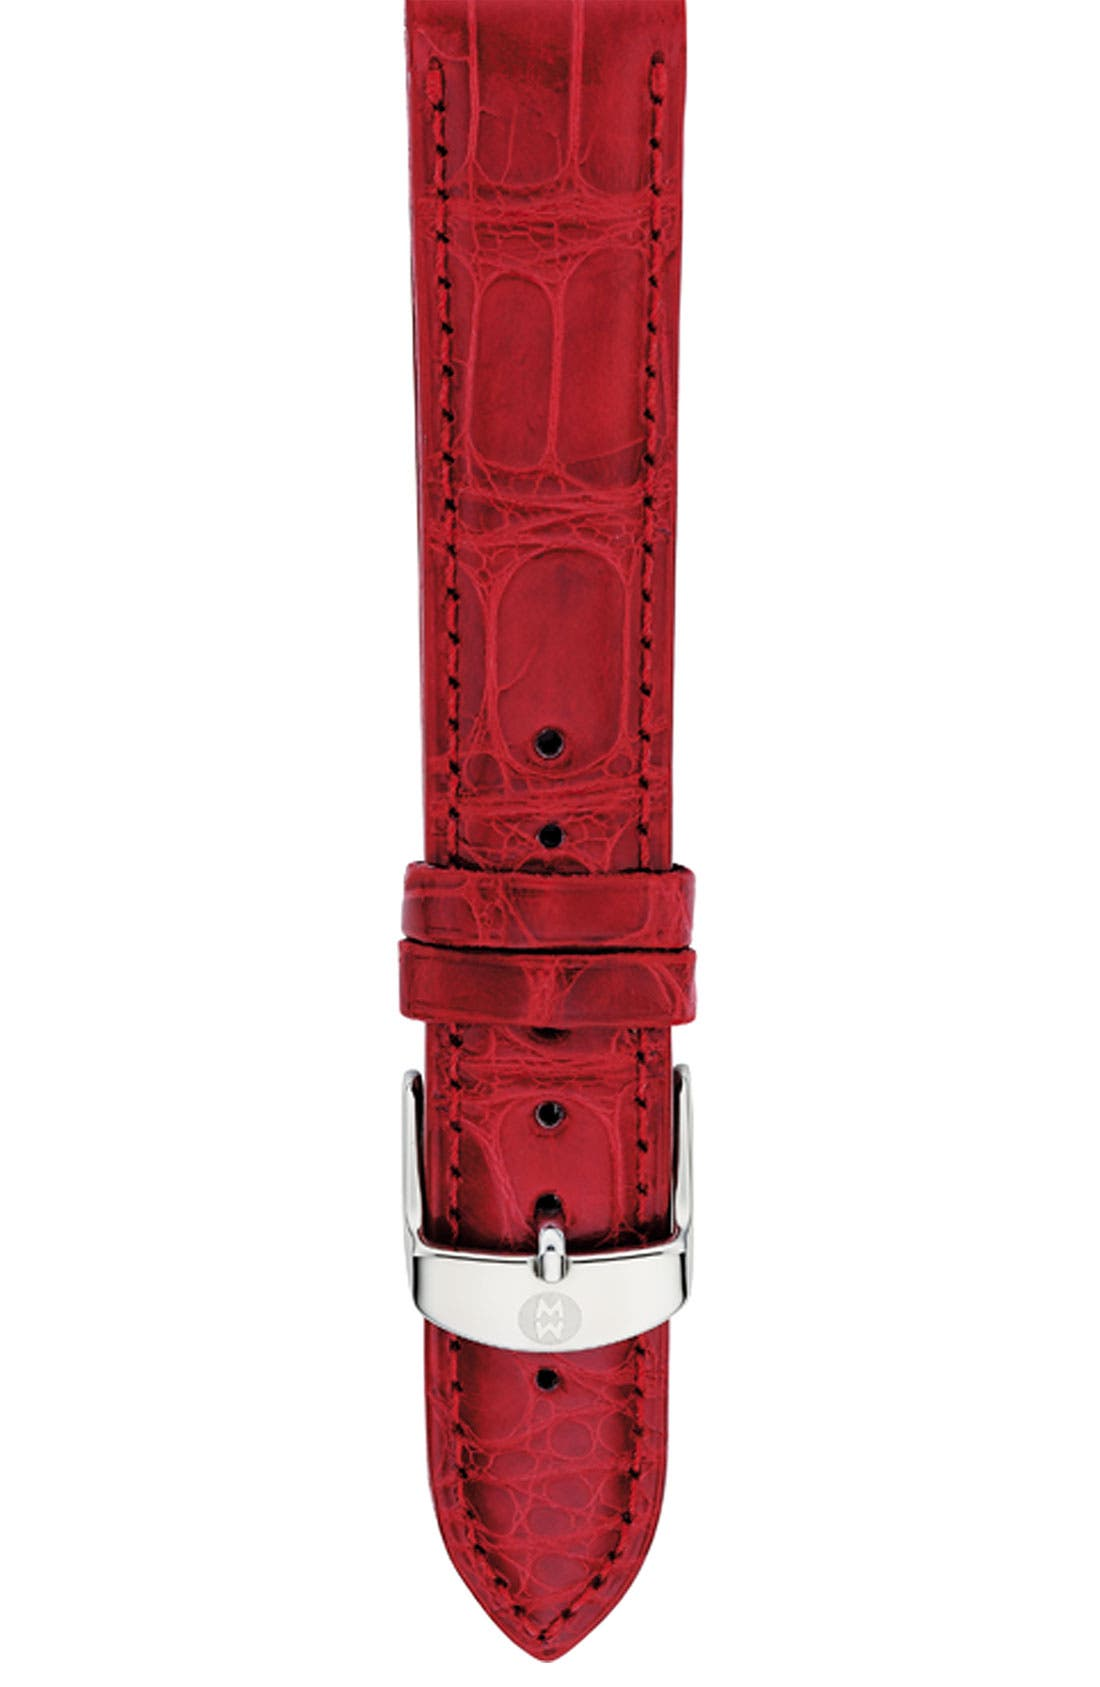 MICHELE 18mm Alligator Watch Strap